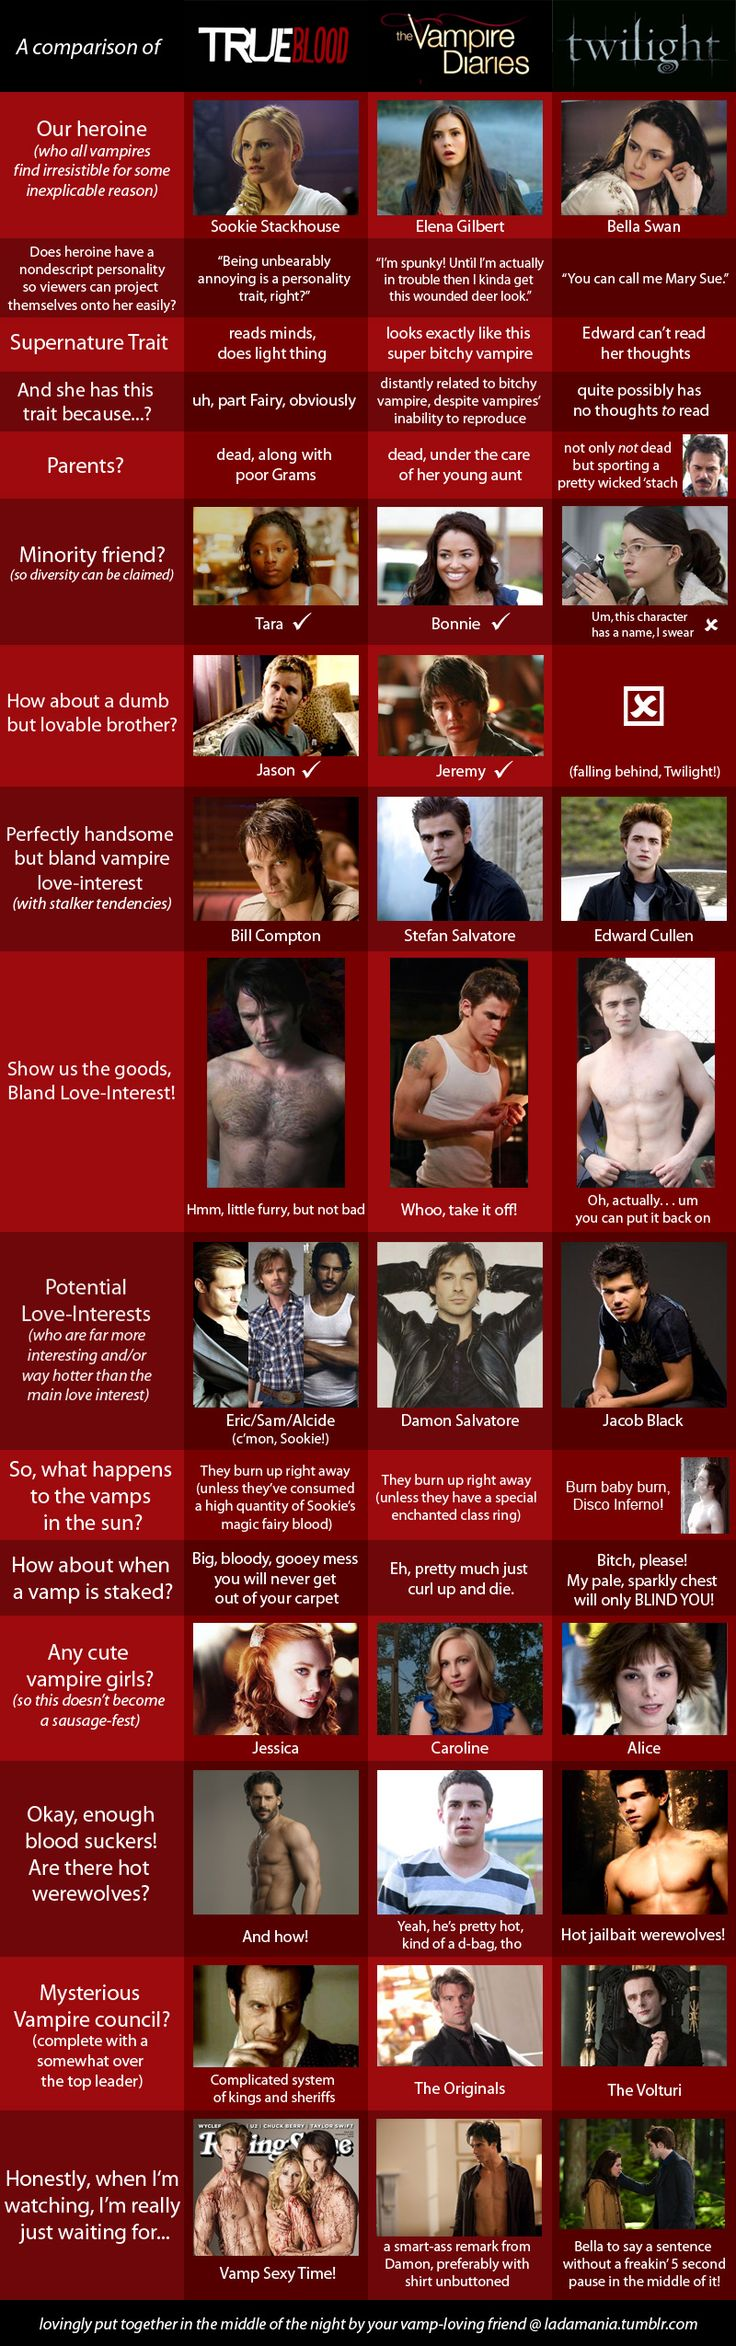 Hilariously spot on - though I have to admit to being only marginally familiar with two of these 3. :P (From Ladamania)